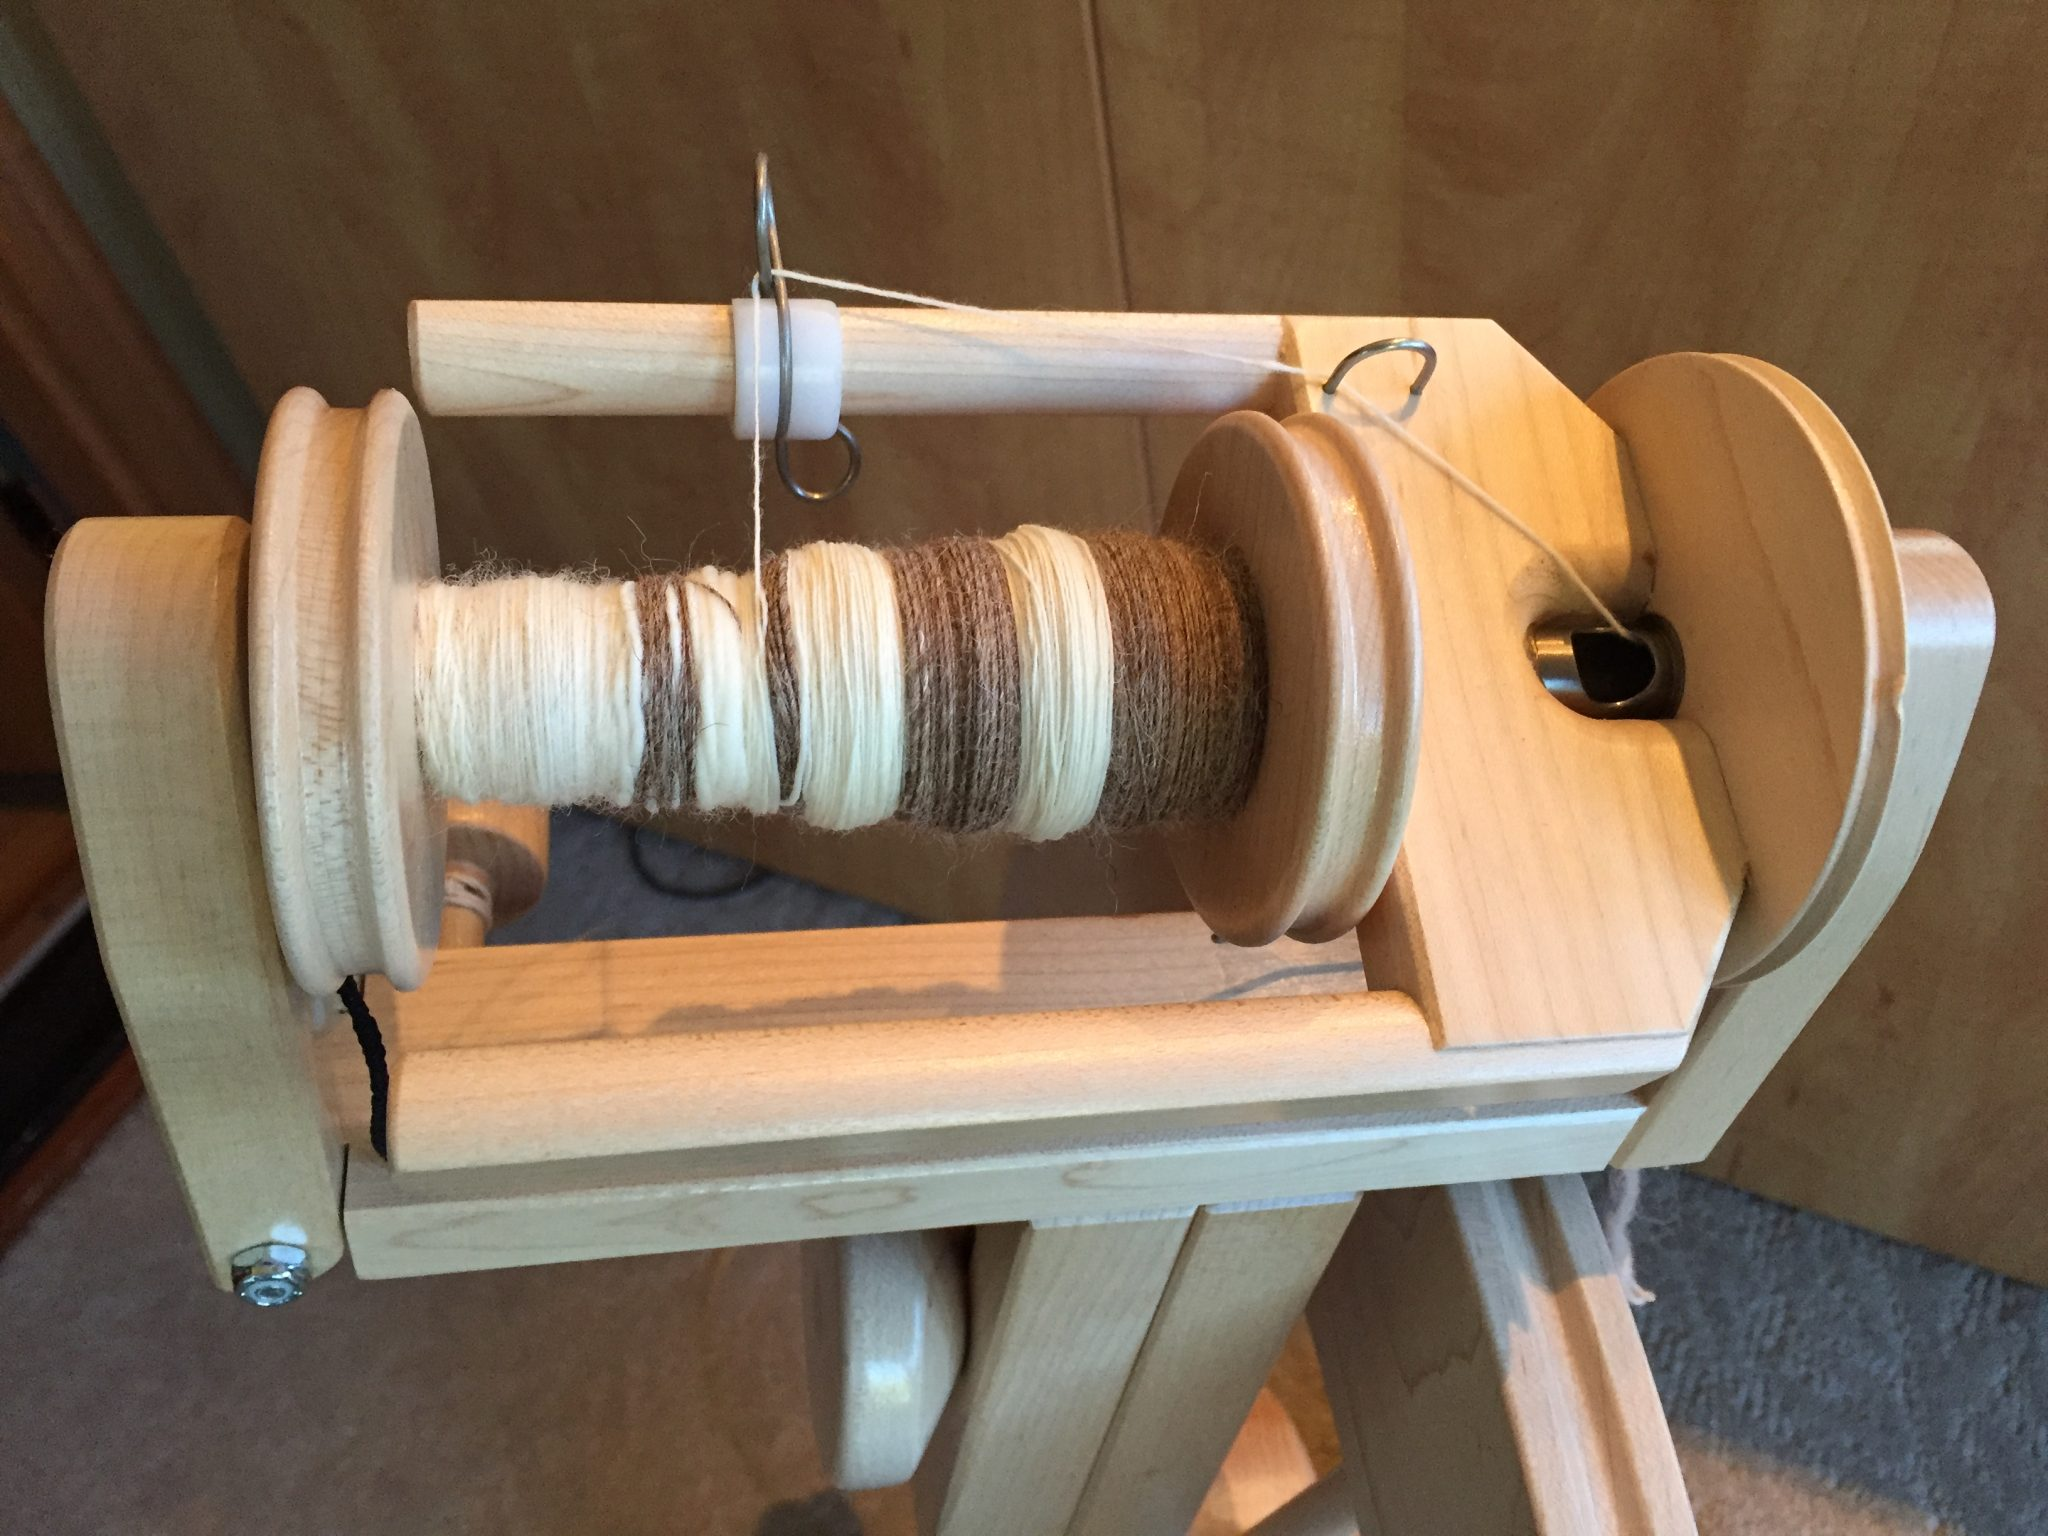 Yarn spun at Strung Along